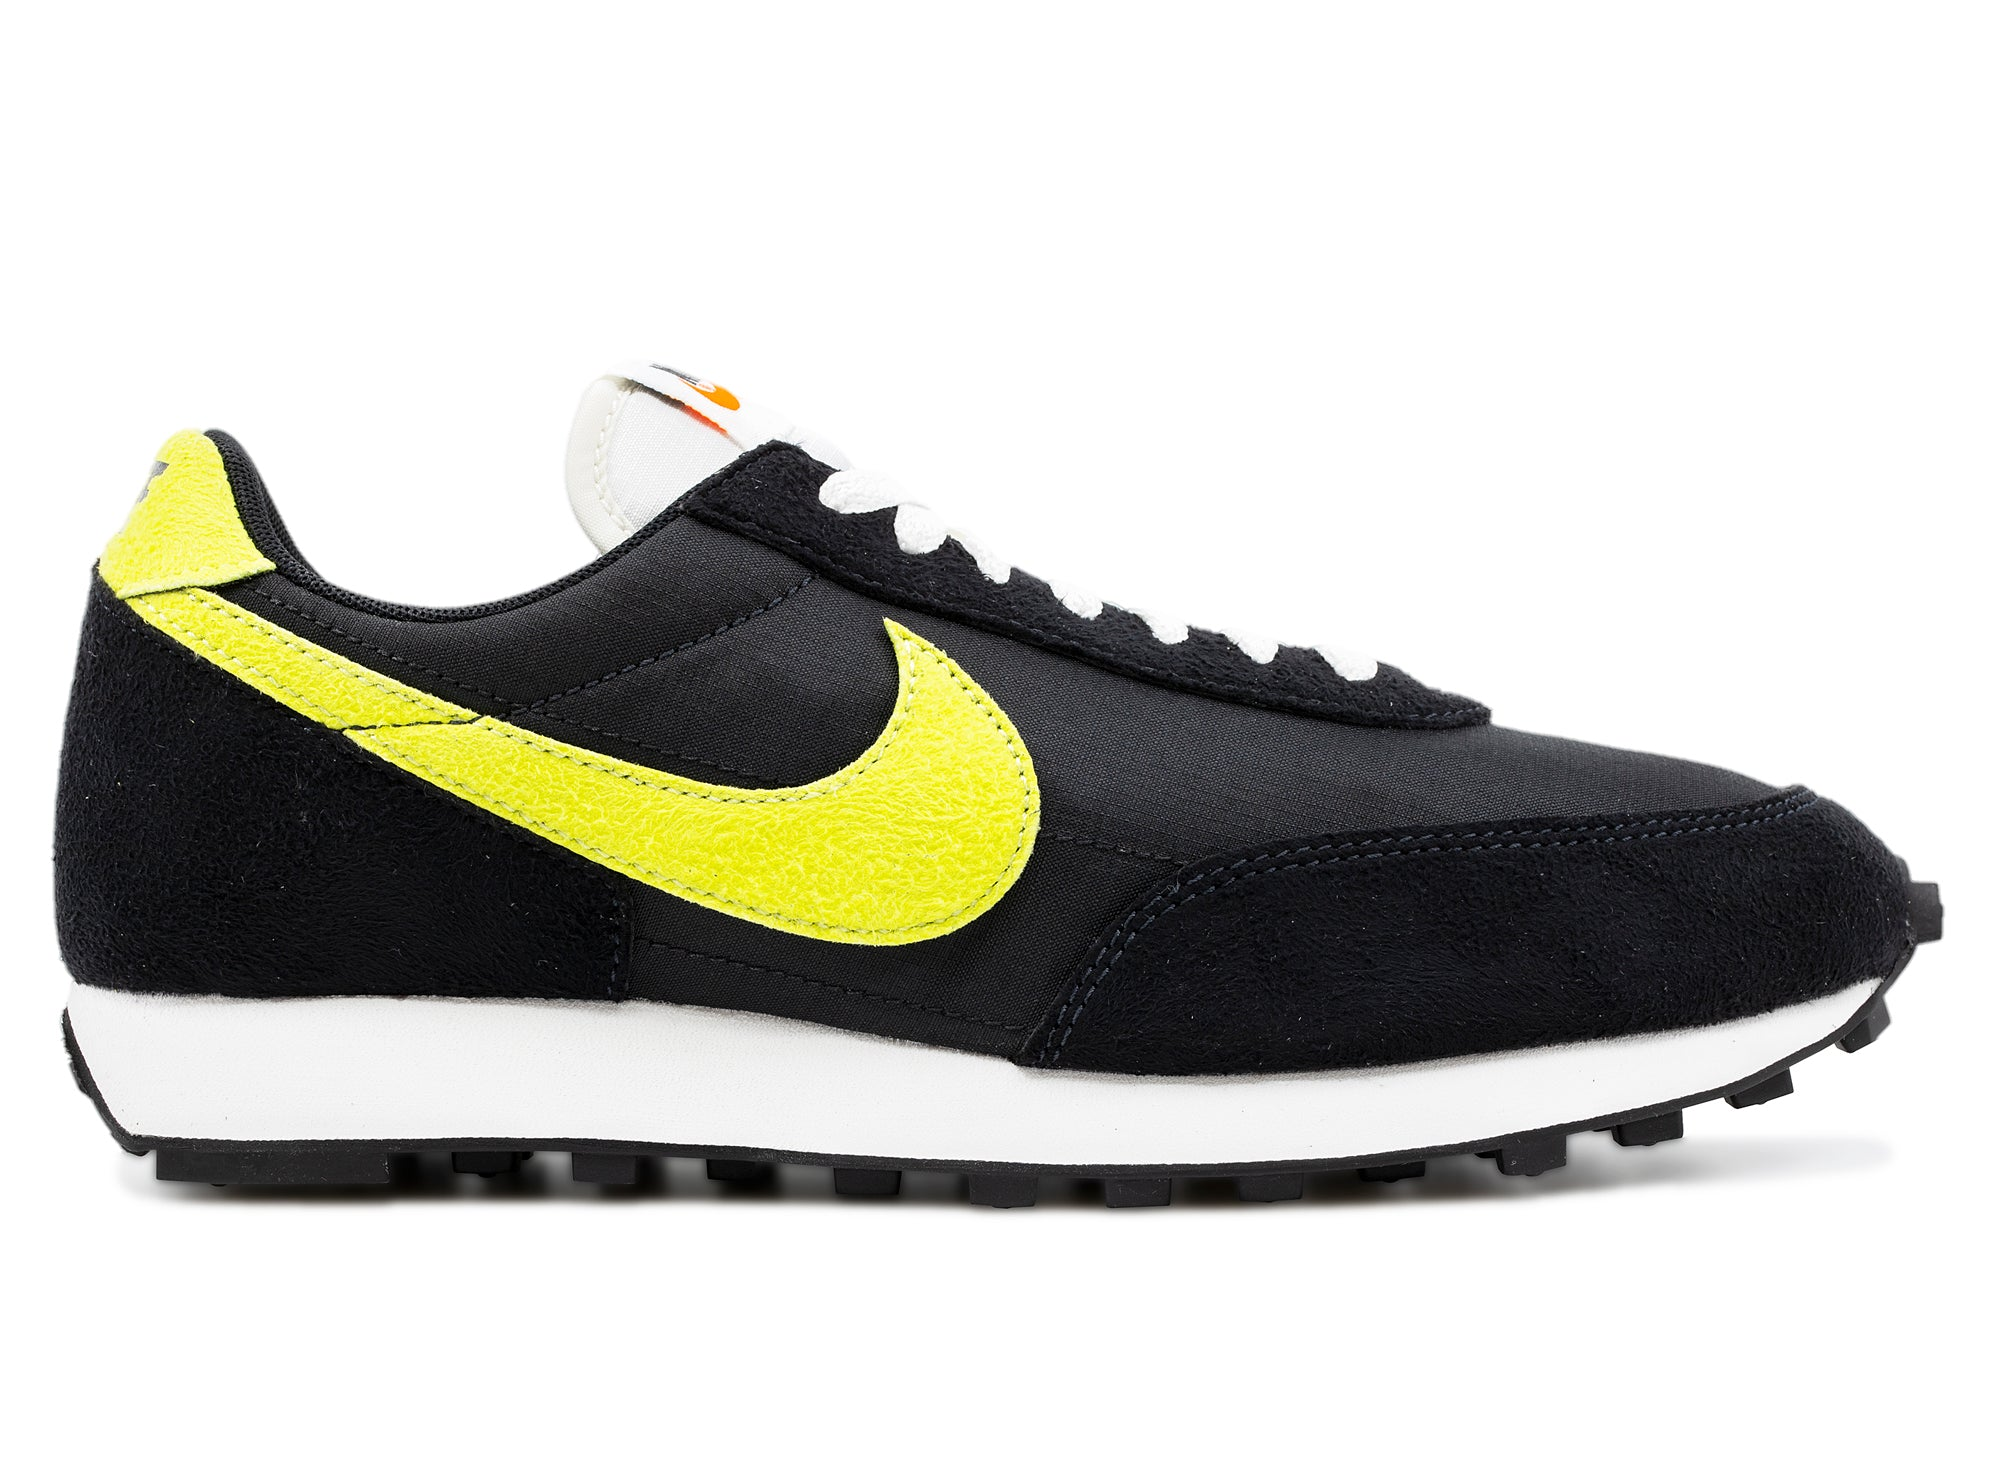 Men's Nike Daybreak SP xld